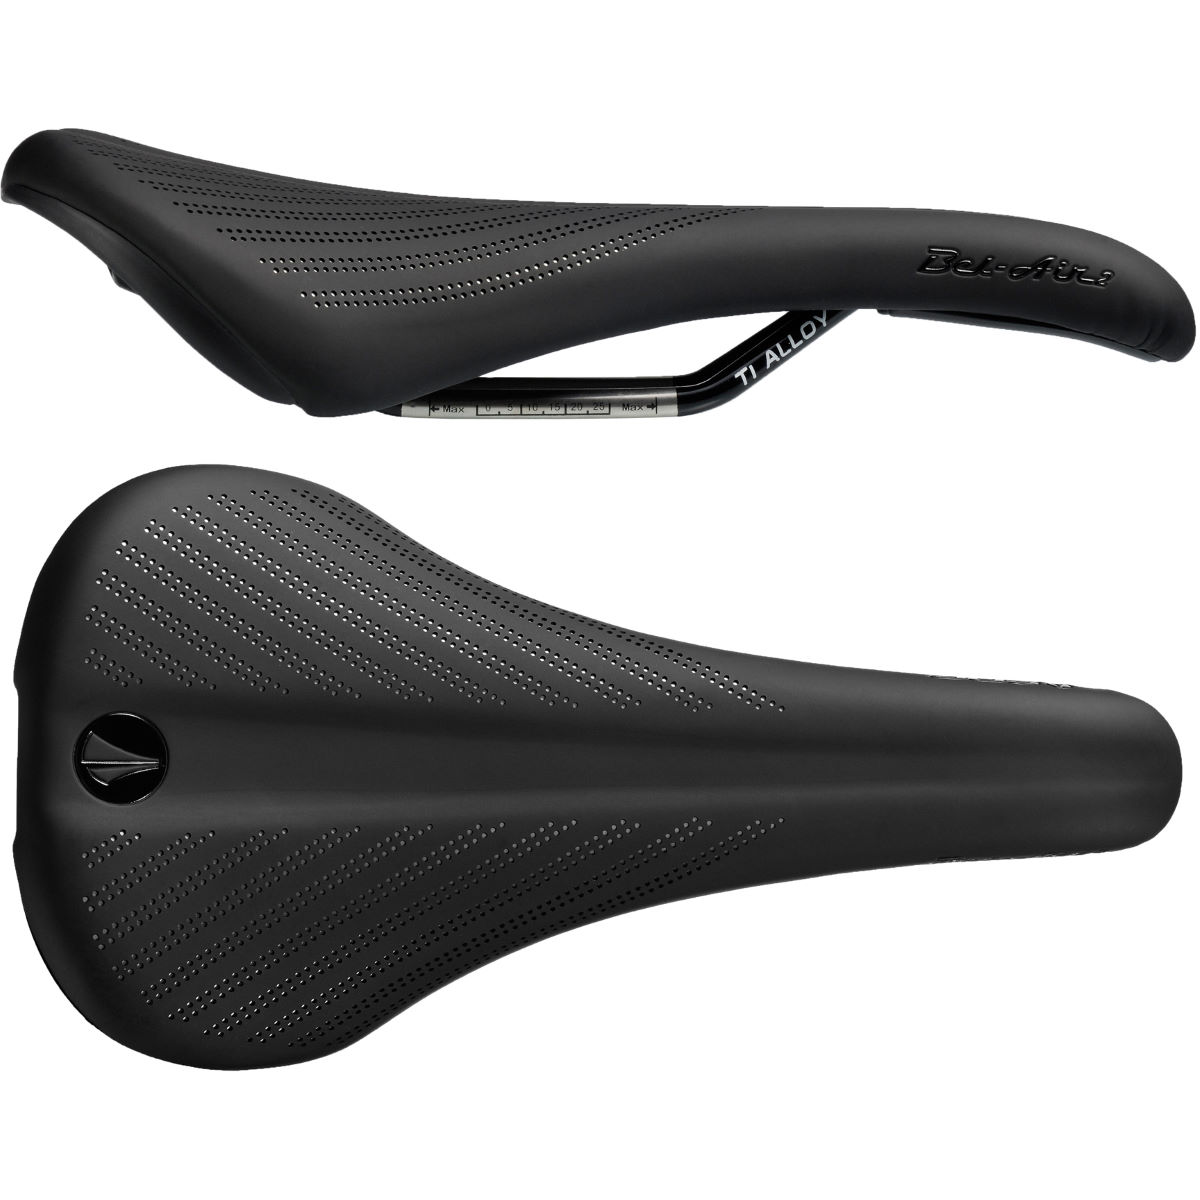 SDG Bel Air 2.0 Ti-Alloy Rail Saddle - Sillines